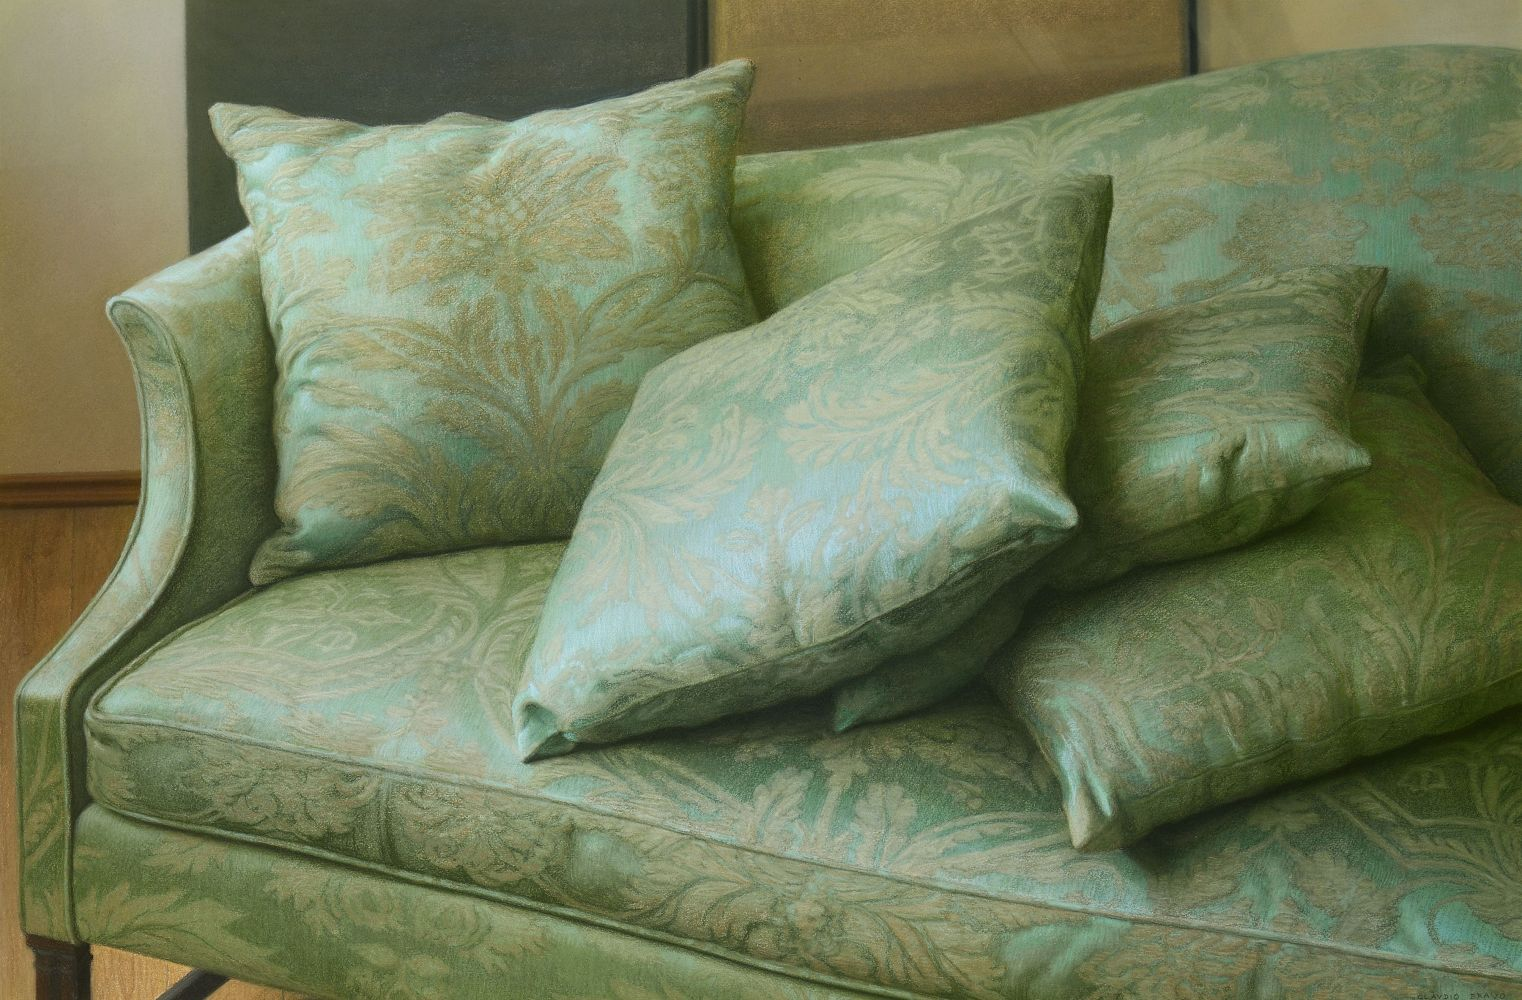 Green Sofa, 1991, pastel on paper, 31 1/4 x 45 7/8 inches